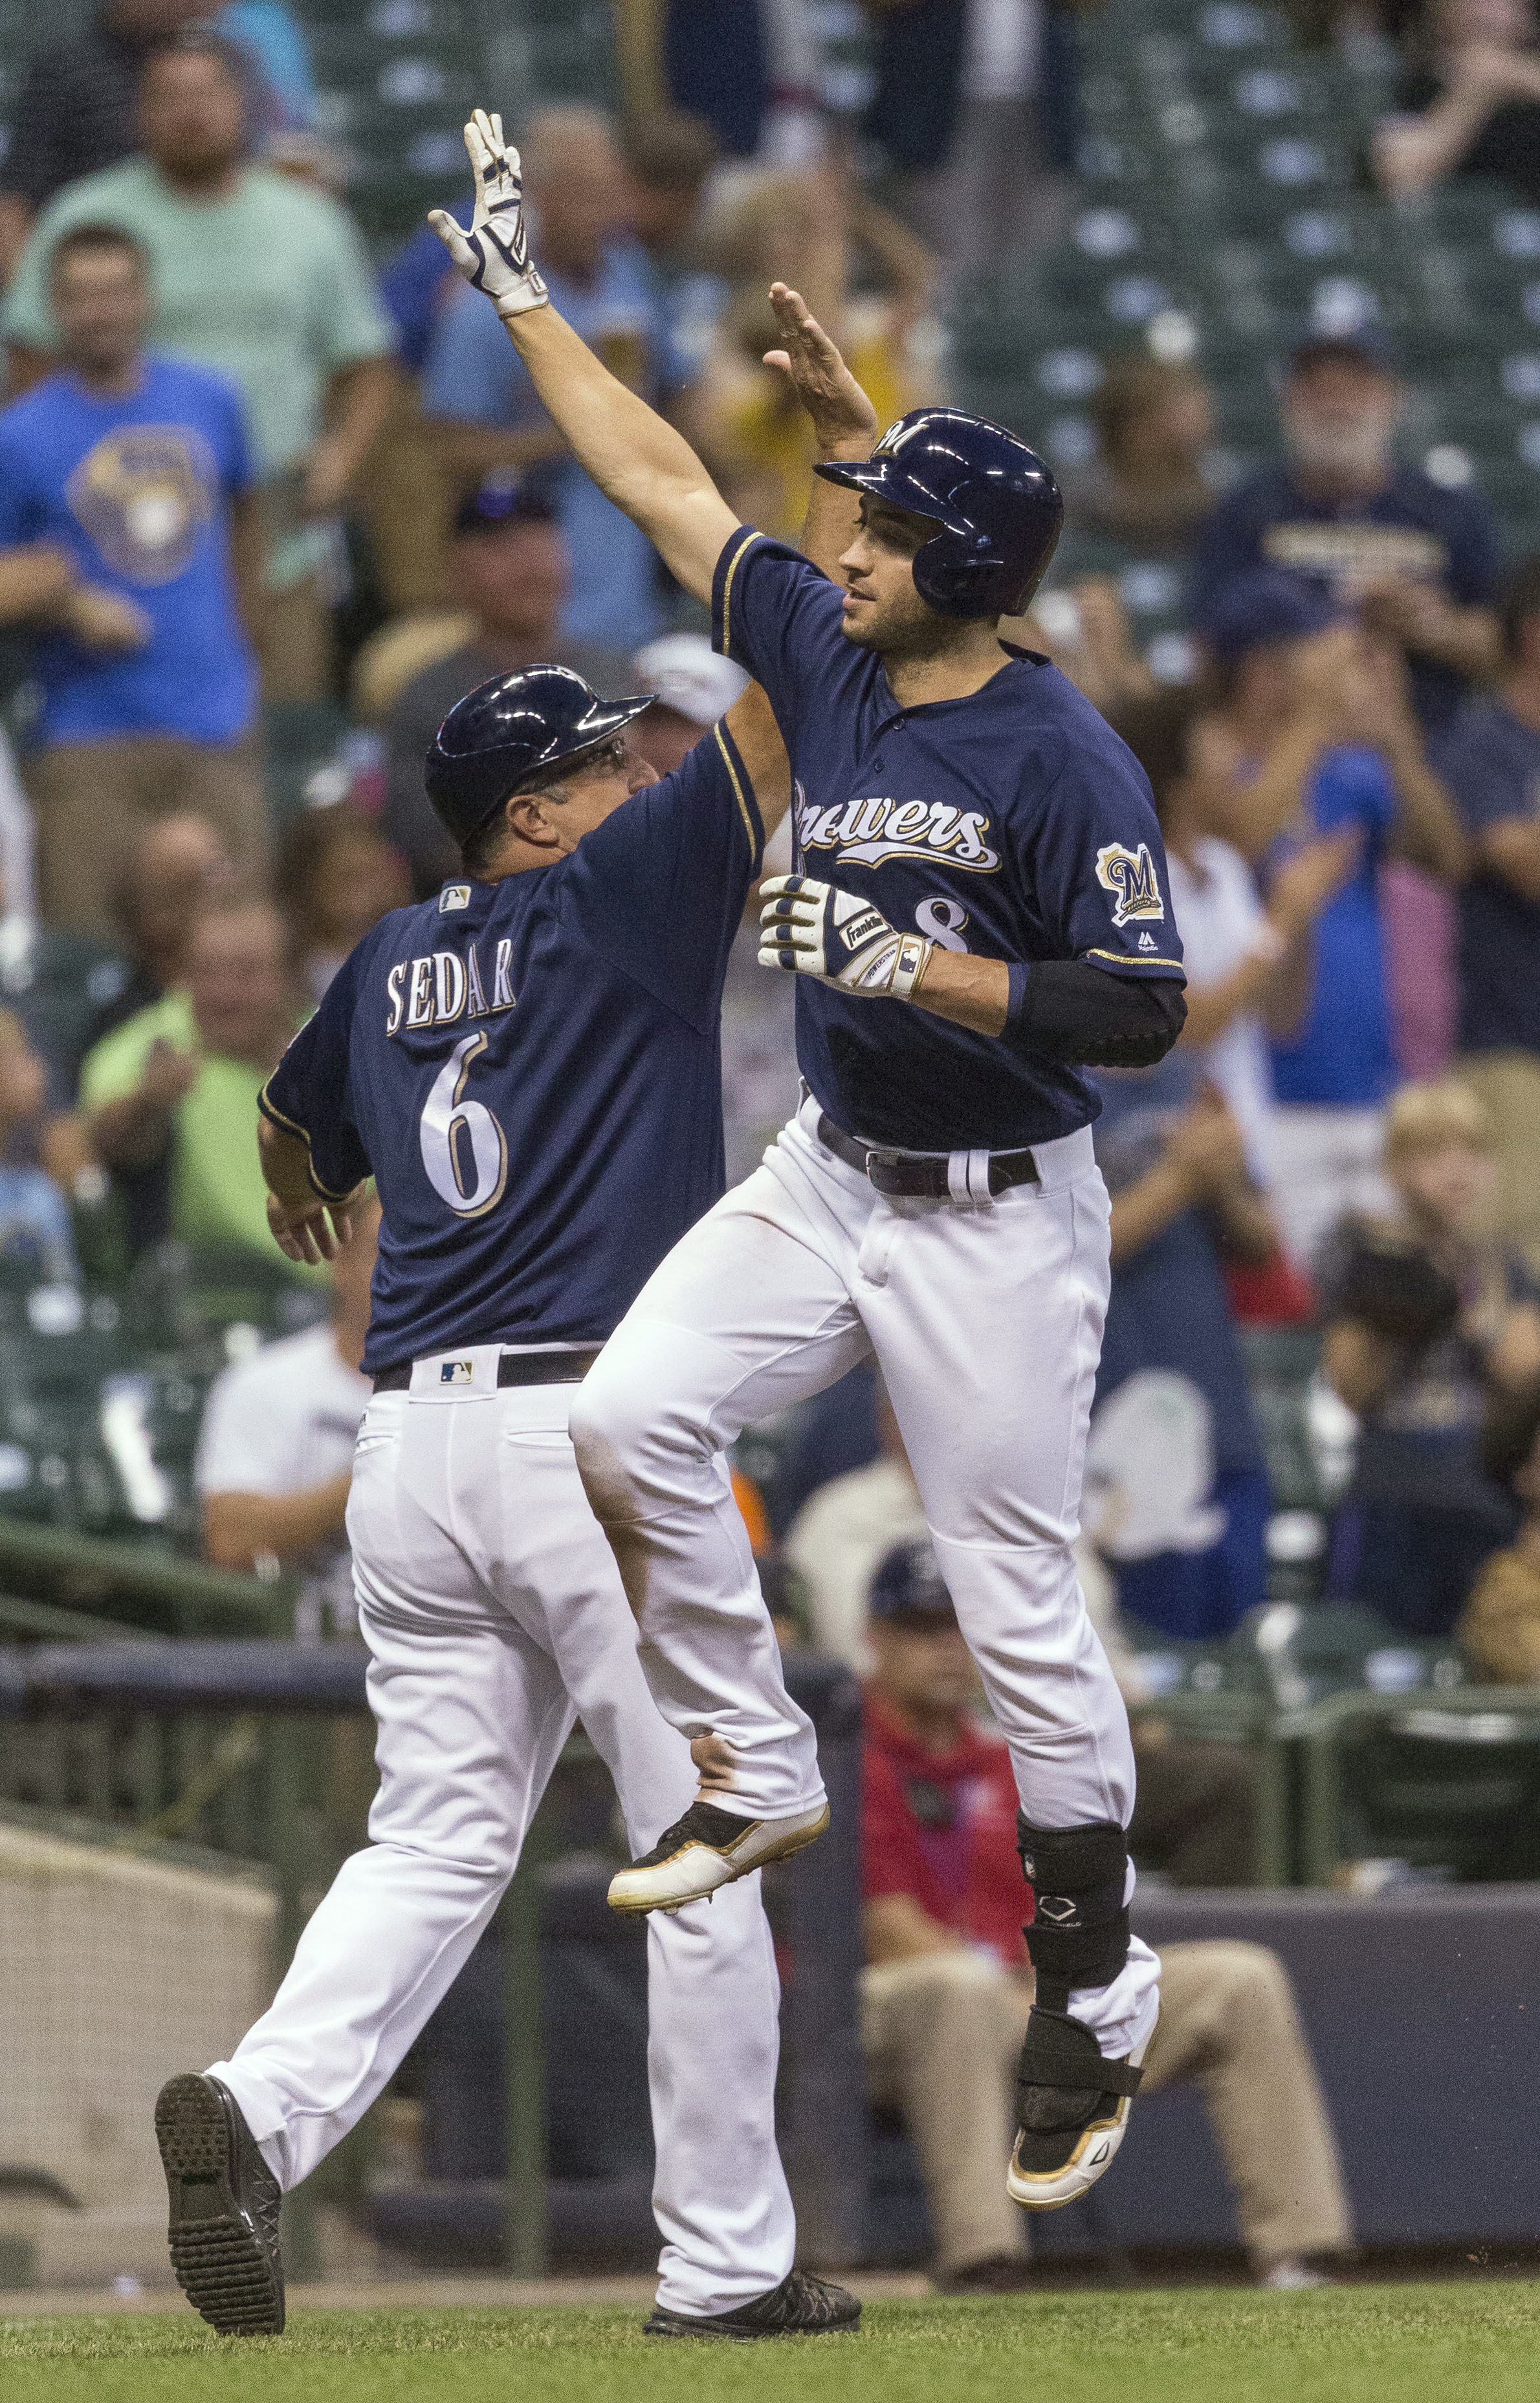 Milwaukee Brewers' Ryan Braun leaps for a high-five from third base coach Ed Sedar after hitting a solo home run off of Atlanta Braves' Tyrell Jenkins during the fourth inning of a baseball game Tuesday, Aug. 9, 2016, in Milwaukee. (AP Photo/Tom Lynn)